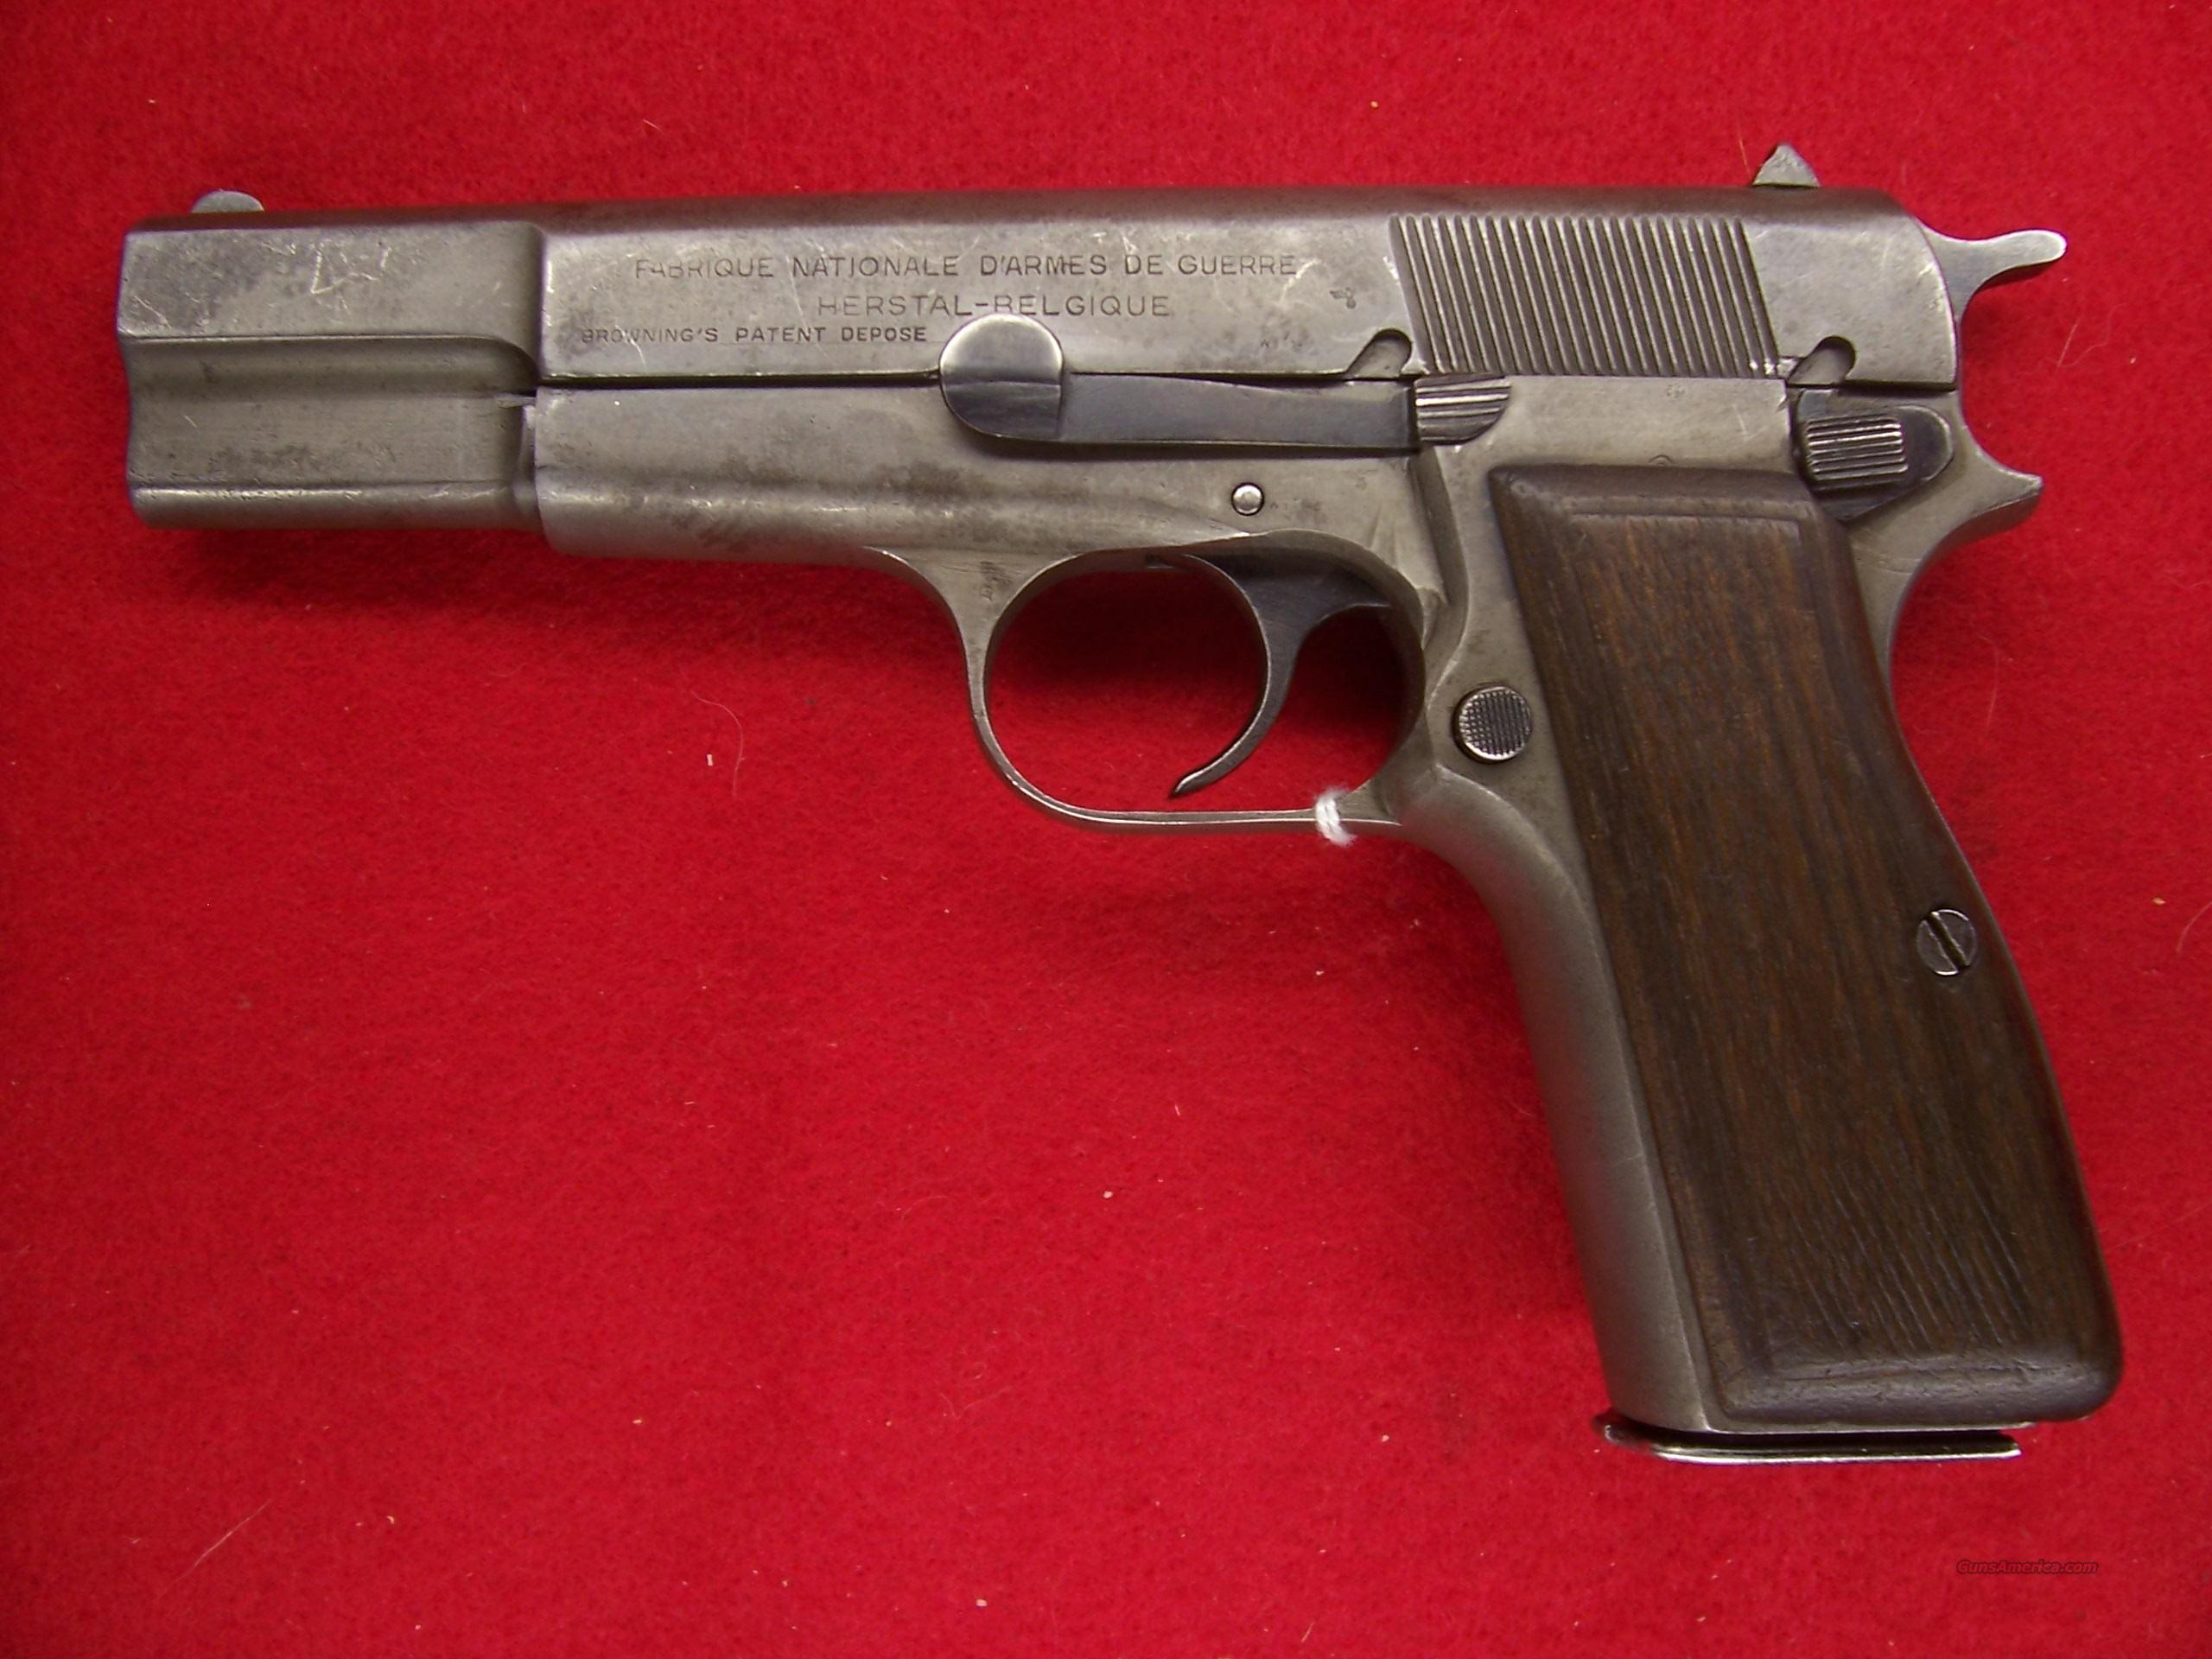 FN Hi-POWER WW-II .9MM WAFFENAMPT PROOTED MATCHING BARREL,SLIDE&FRAME  Guns > Pistols > Browning Pistols > High Power